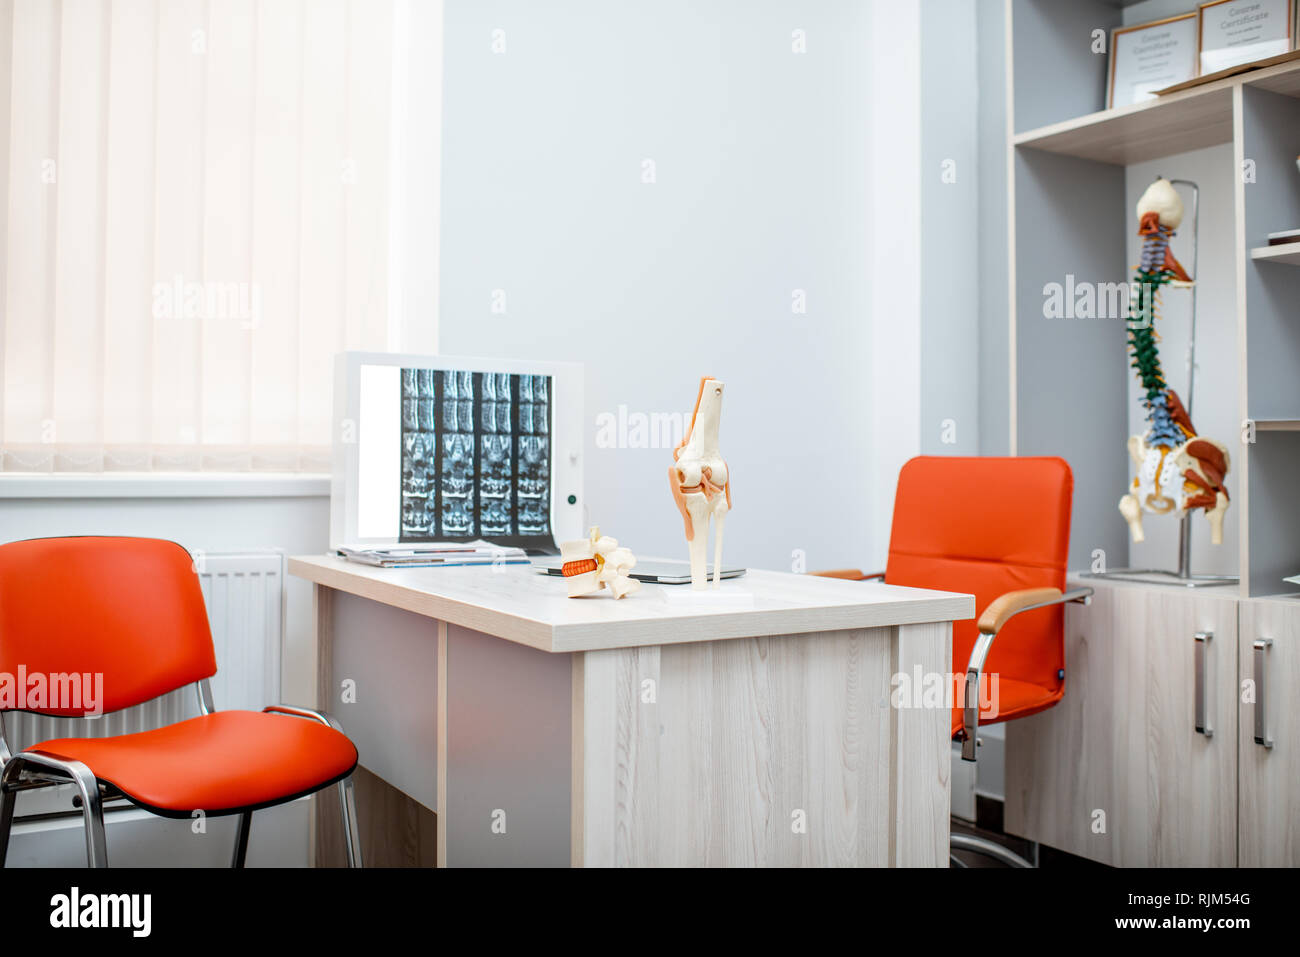 Office of the therapist with anatomical models and spine x-ray at the table - Stock Image